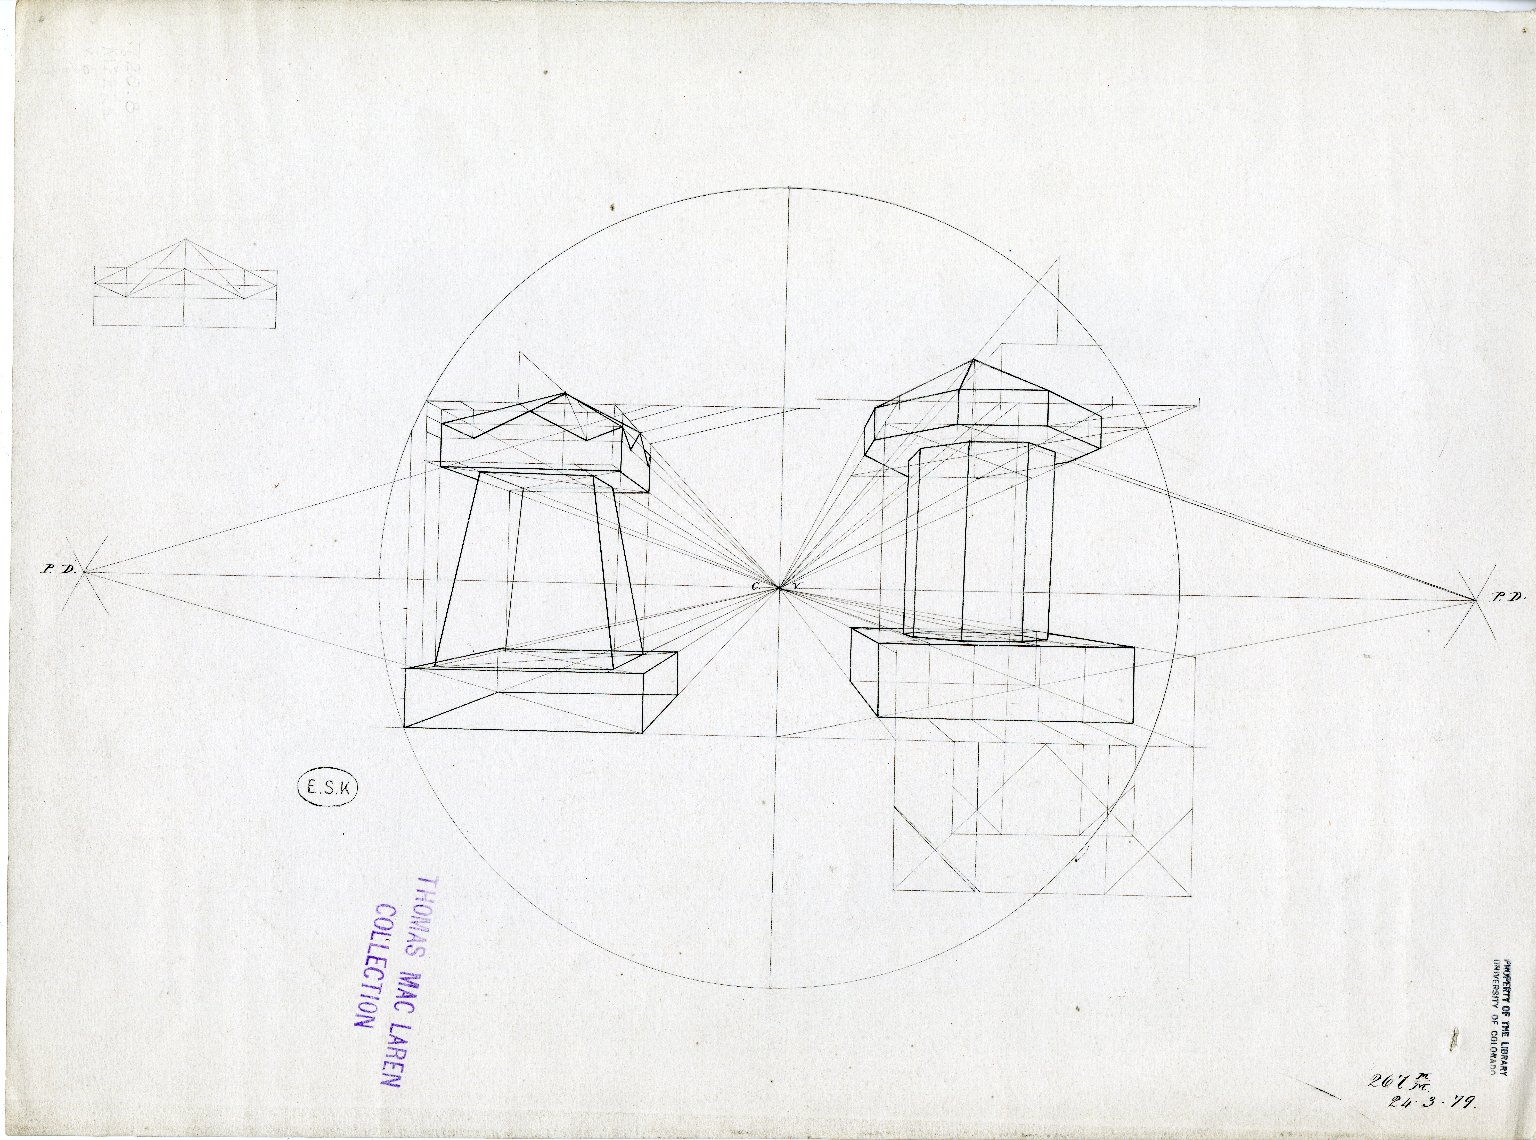 Perspective drawing of two obelisks with angled caps